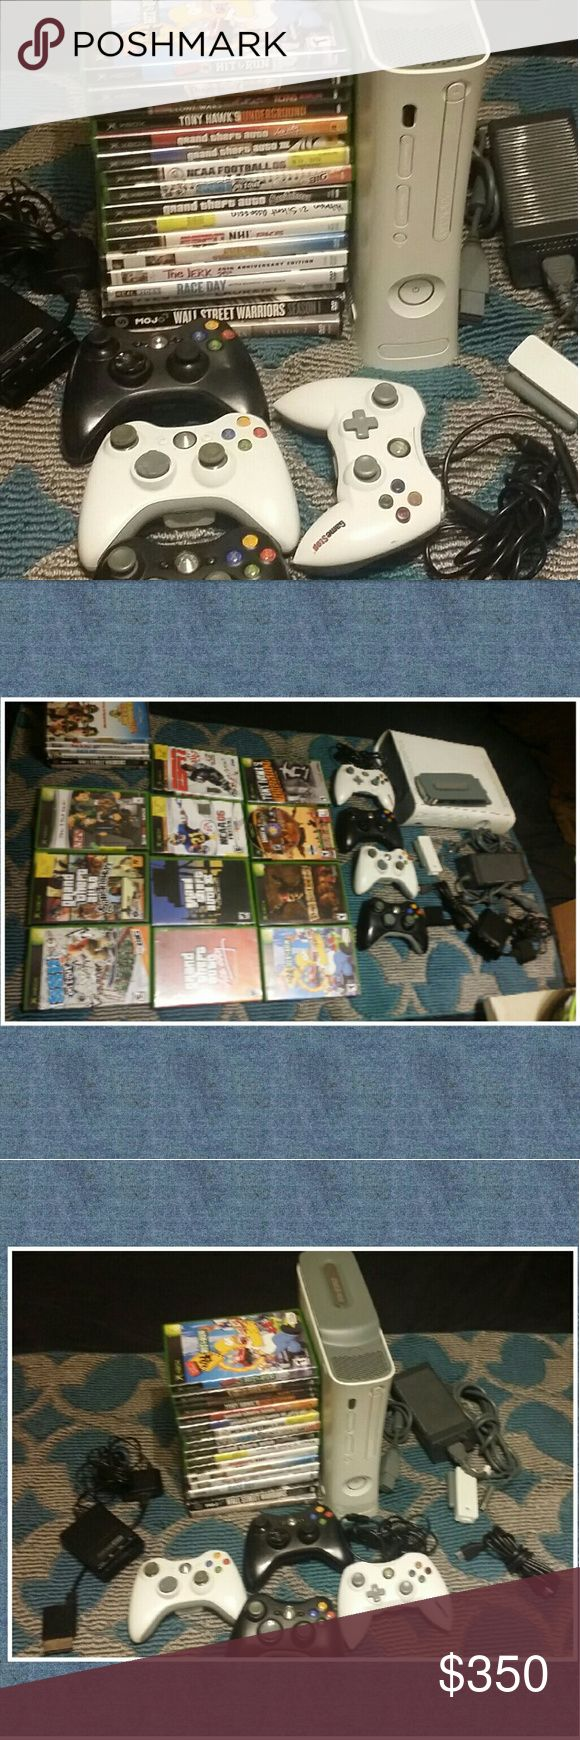 360 XBOX White 250GB 4 remotes 11 Games 6 Movies 360 xbox White , 250 Gb hard drive, 4 remotes =3 wireless 1 Regular , Internet wireless  . 11 Games & 6 Movies (2 movies are new not open ) .This System is in very good working condition it been used by a respectable Adult  that didn't trow the remote and slammed the system .The system was very well taken care of . 👀🙉 please look at all pictures & Ask All Questions Before you buy 💰💳💸 ❌No Box With this System 🚫 ✔Offers are welcome…